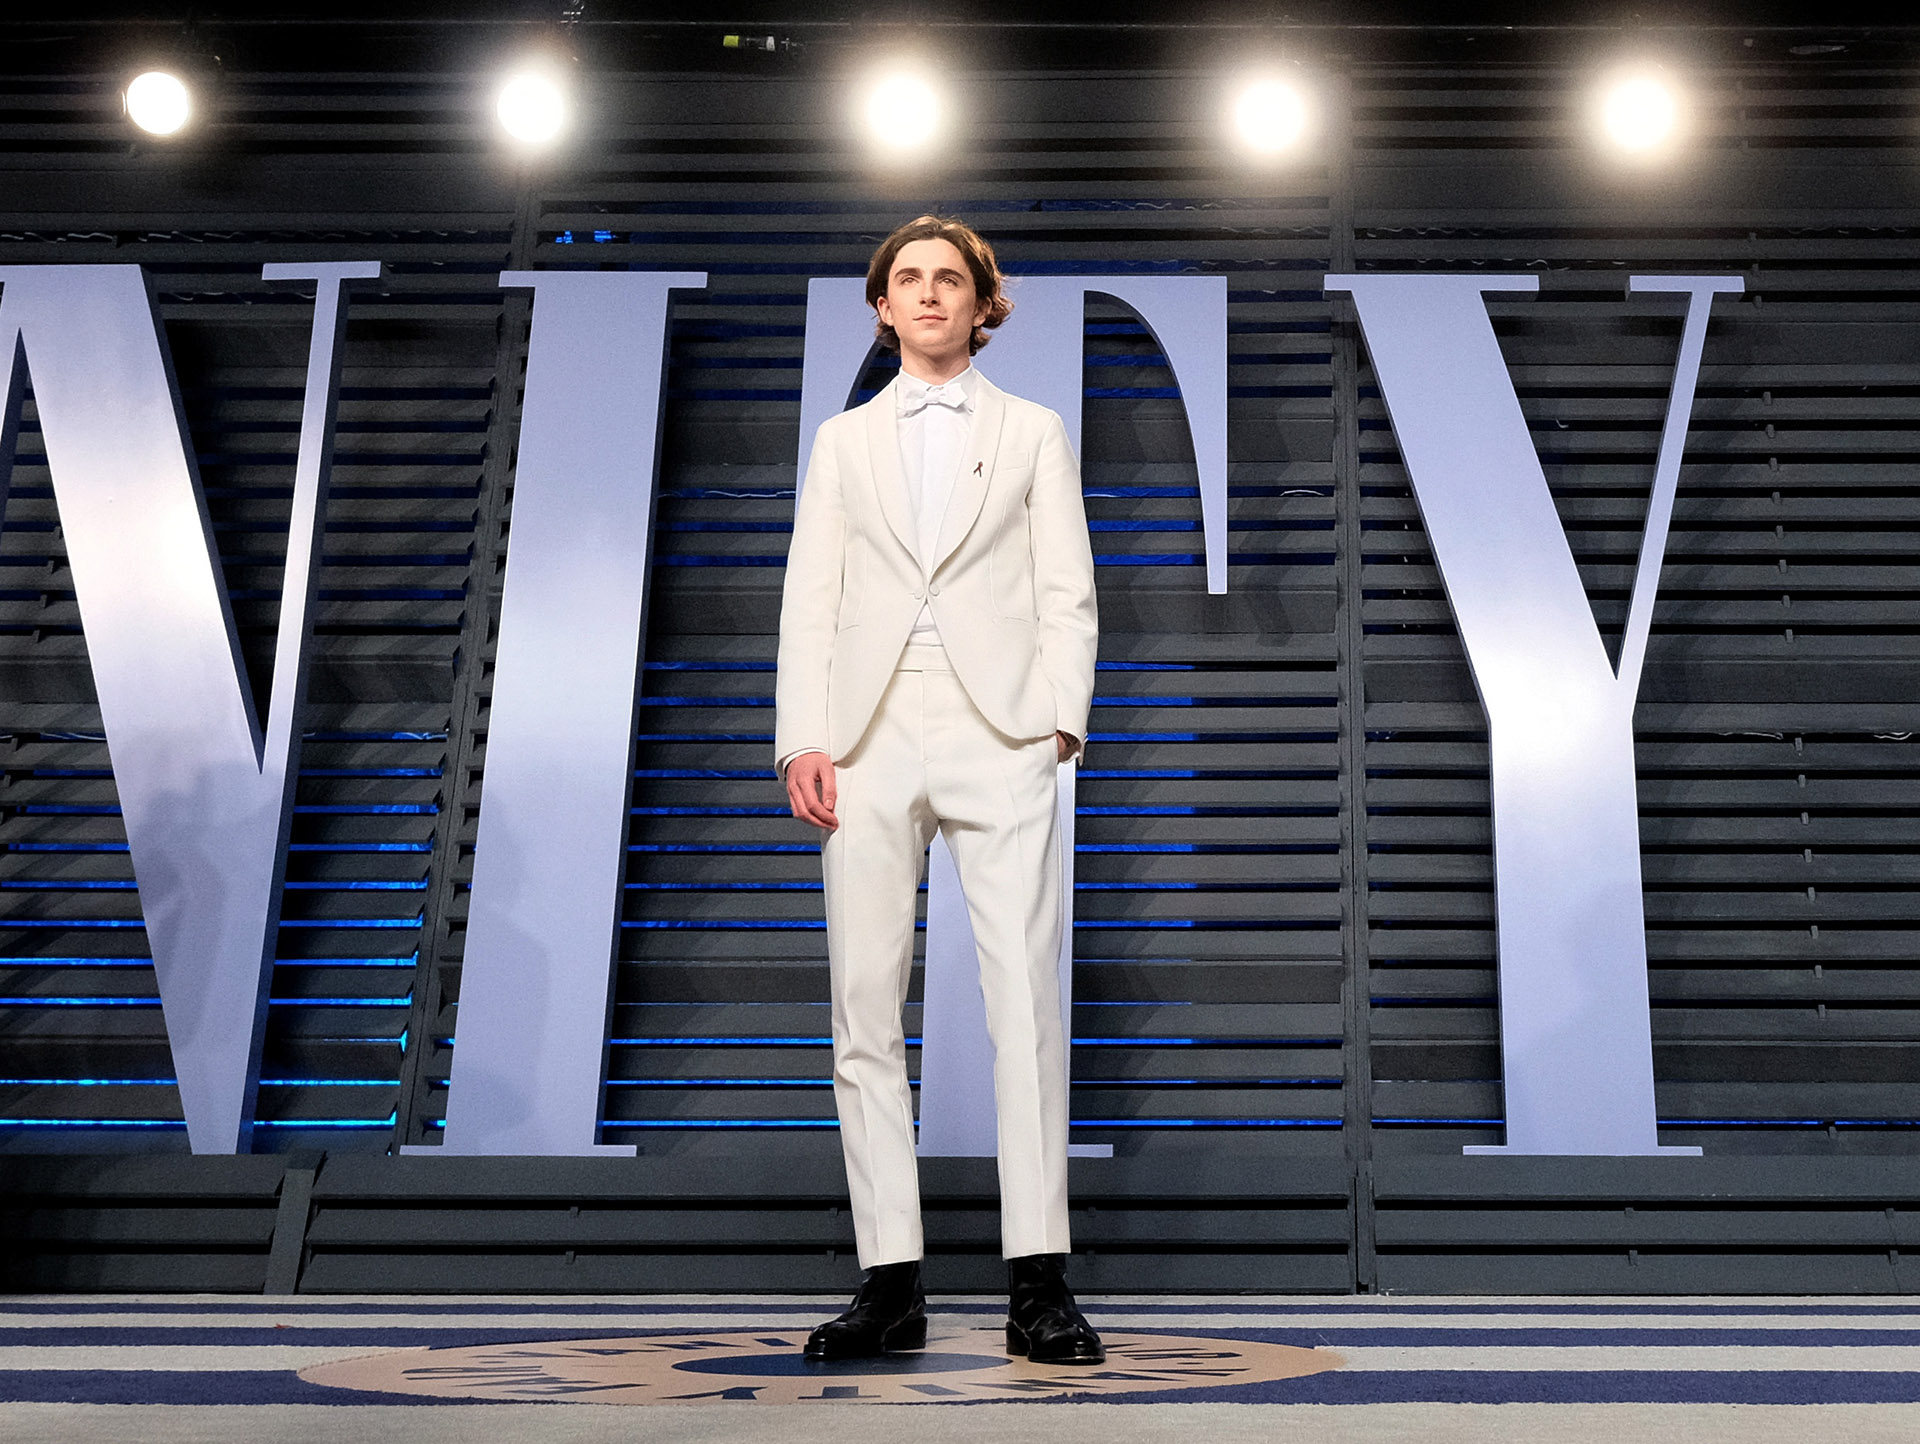 El actor  revelación -Timothée Chalamet- nominada a mejor actor por su interpretación en 'Call me by your name ' sorprendió con un smoking en total white.